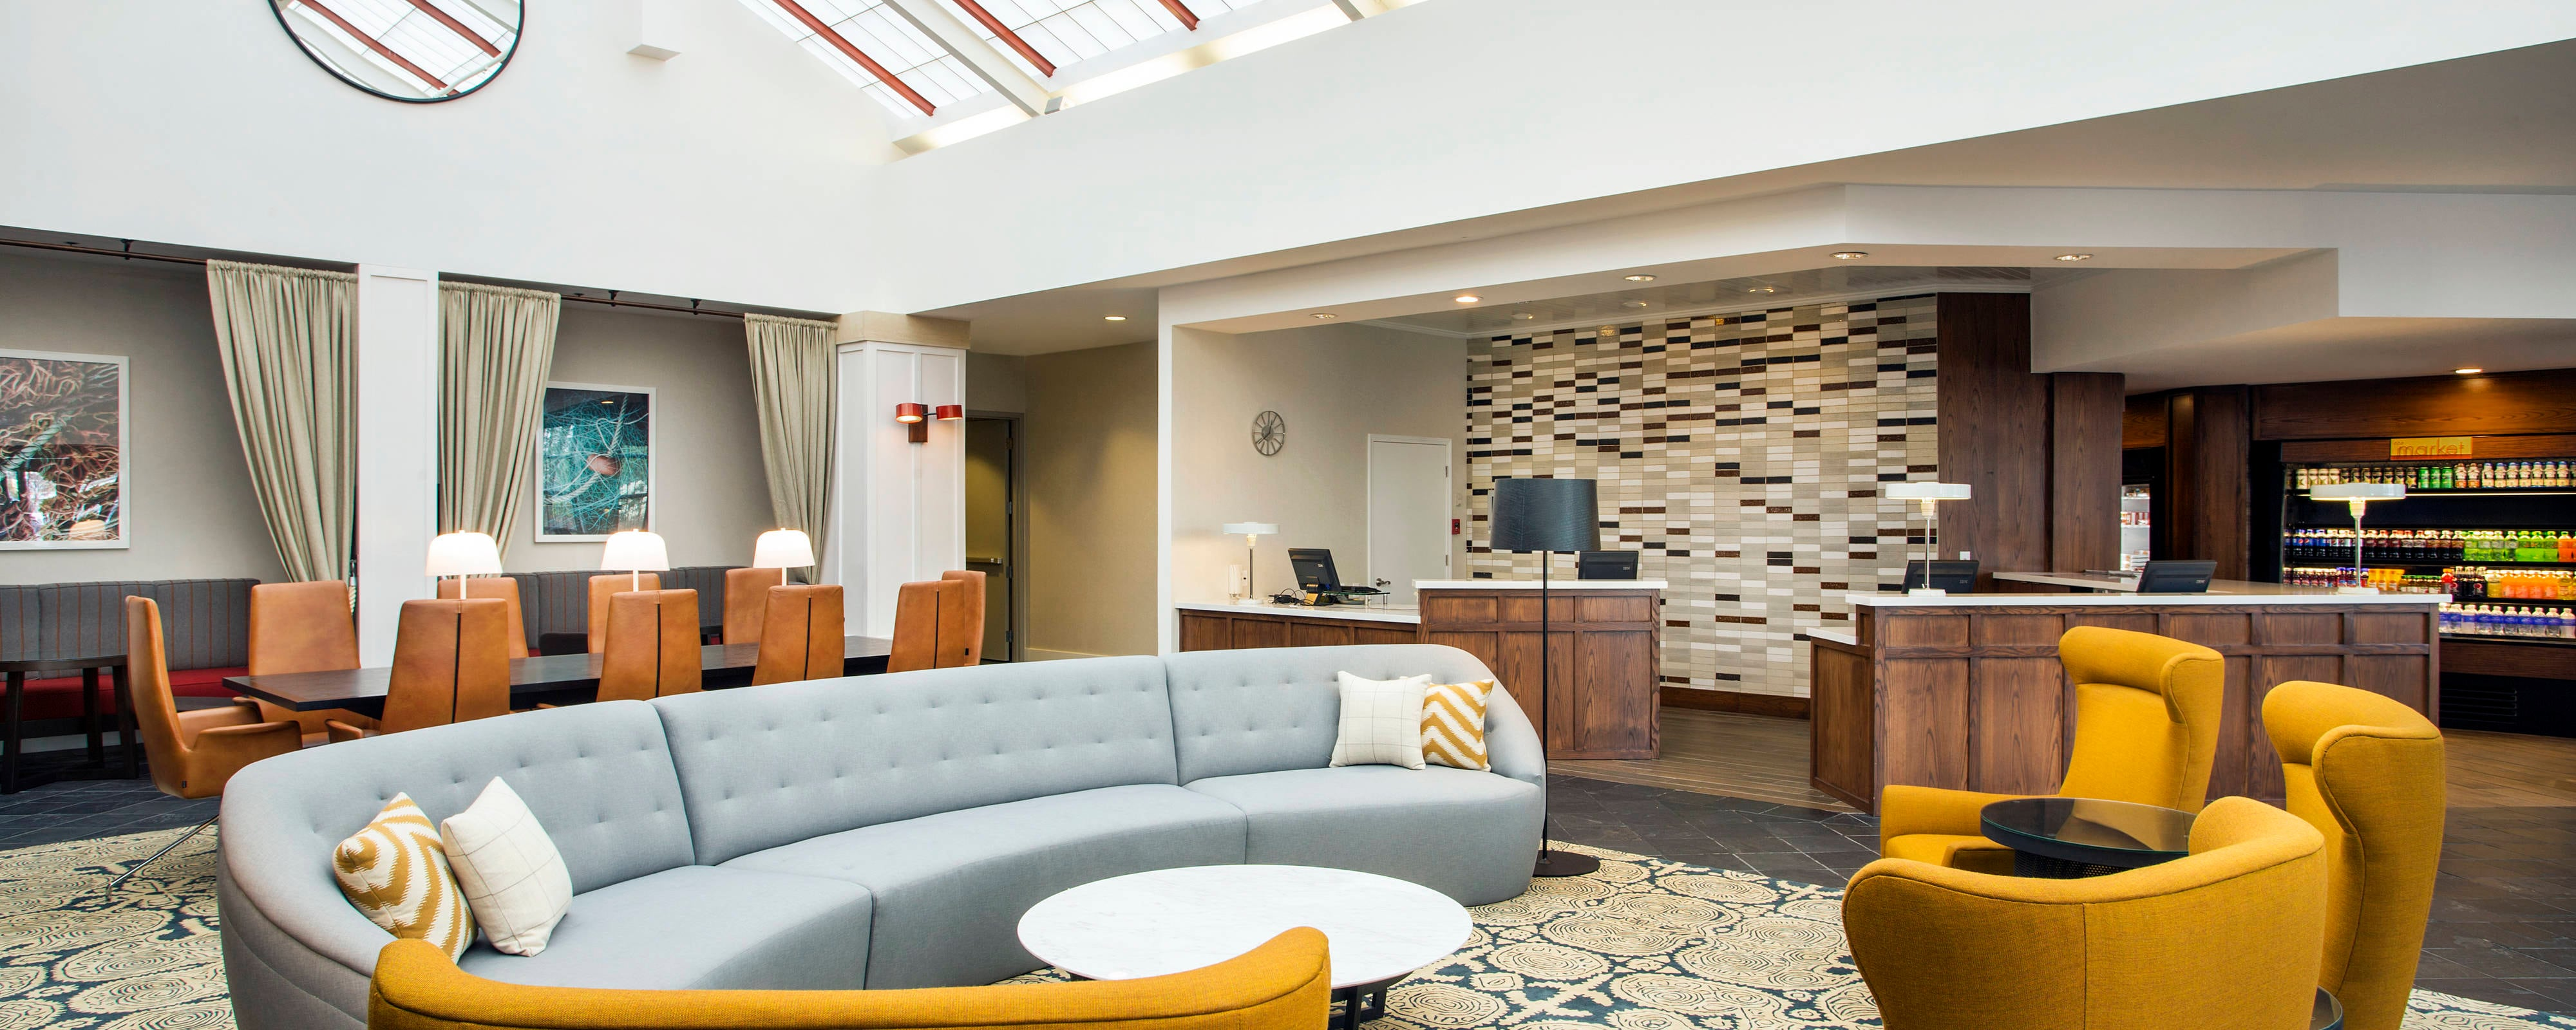 Lobby des Lake Union Hotels in Seattle